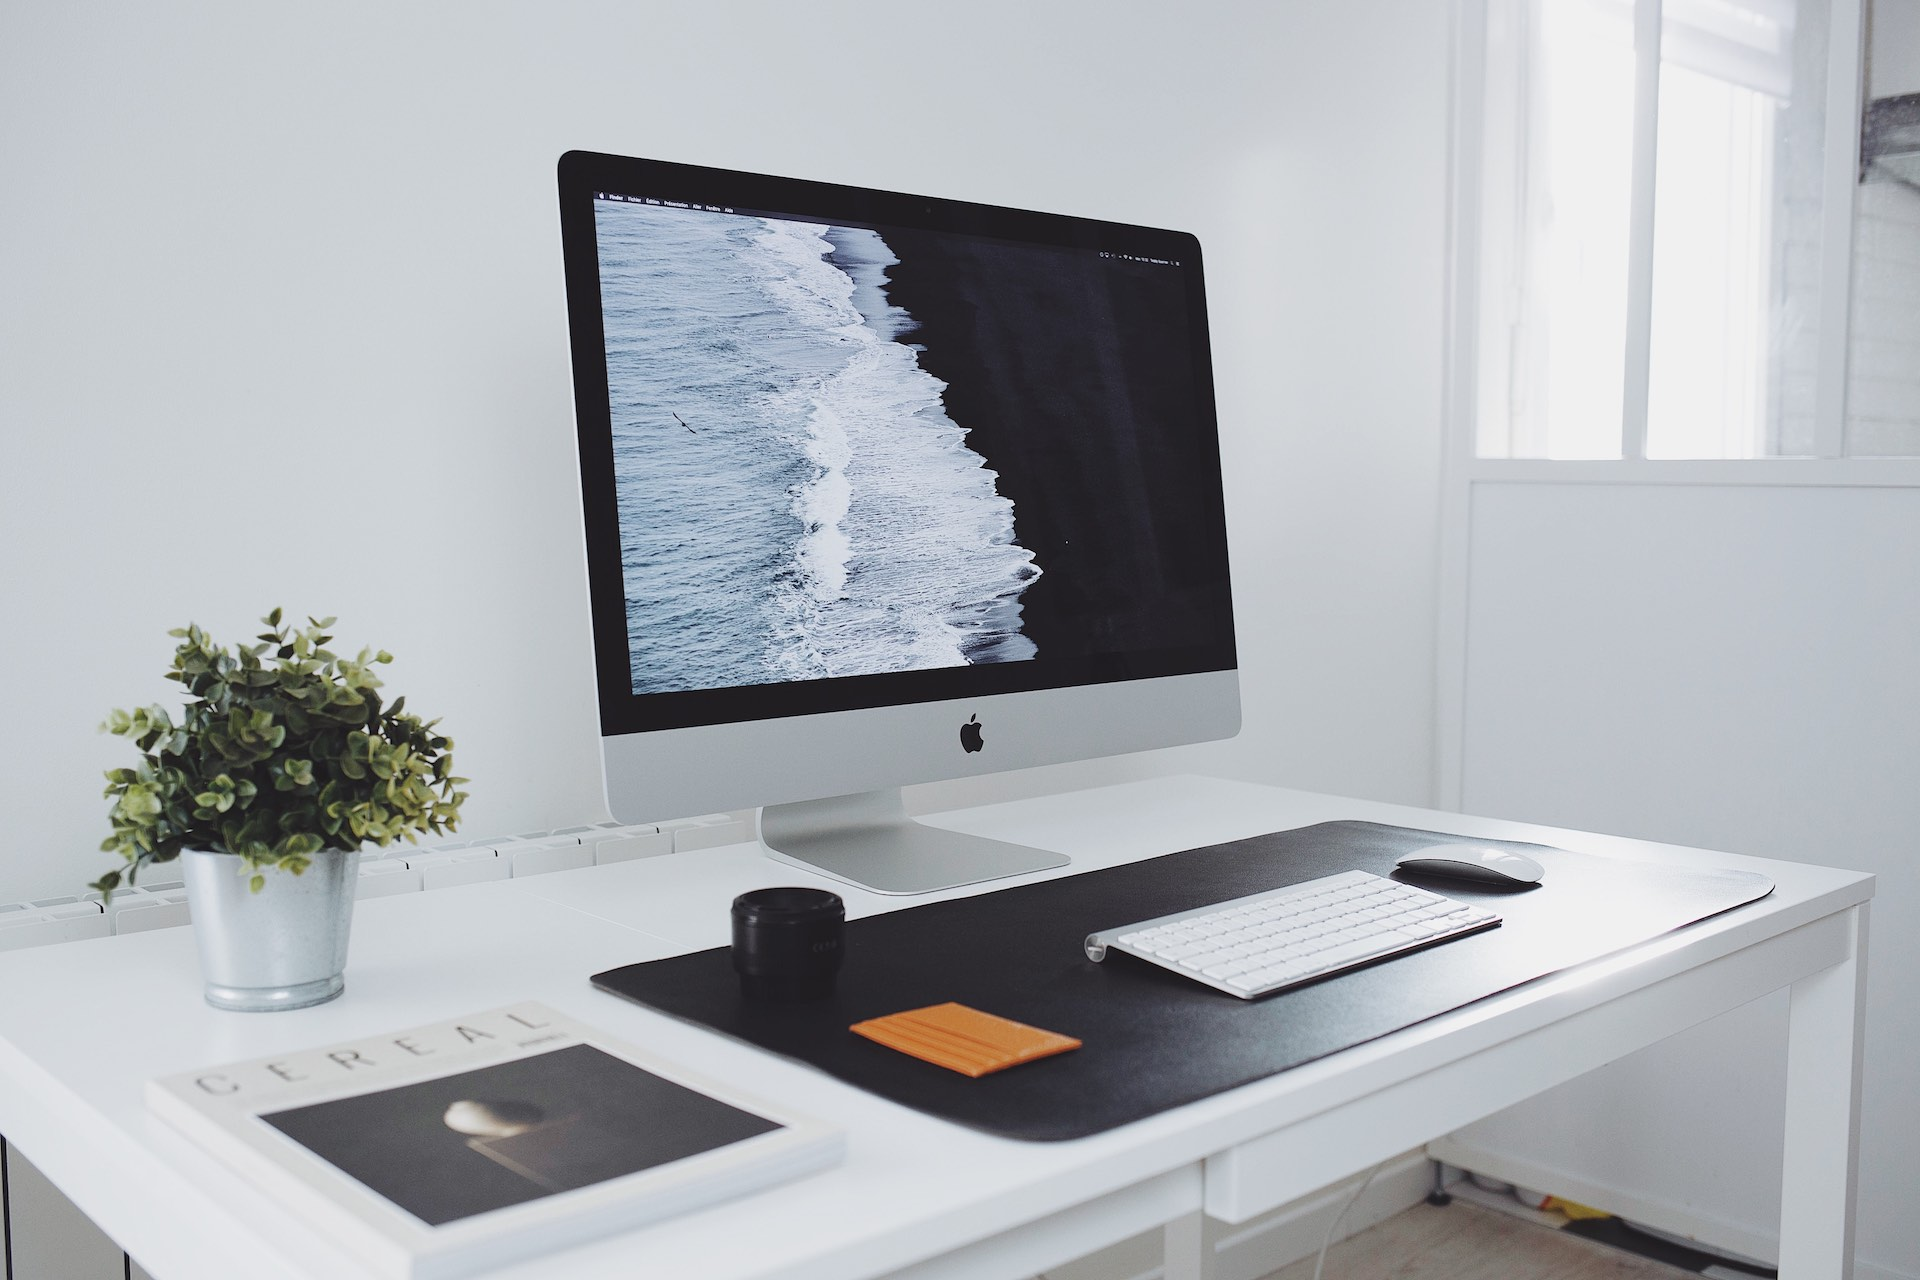 A very clean, modern work space with an iMac on a desk. The entire space is white, including the desk. All the items on the desk are placed symmetrically.